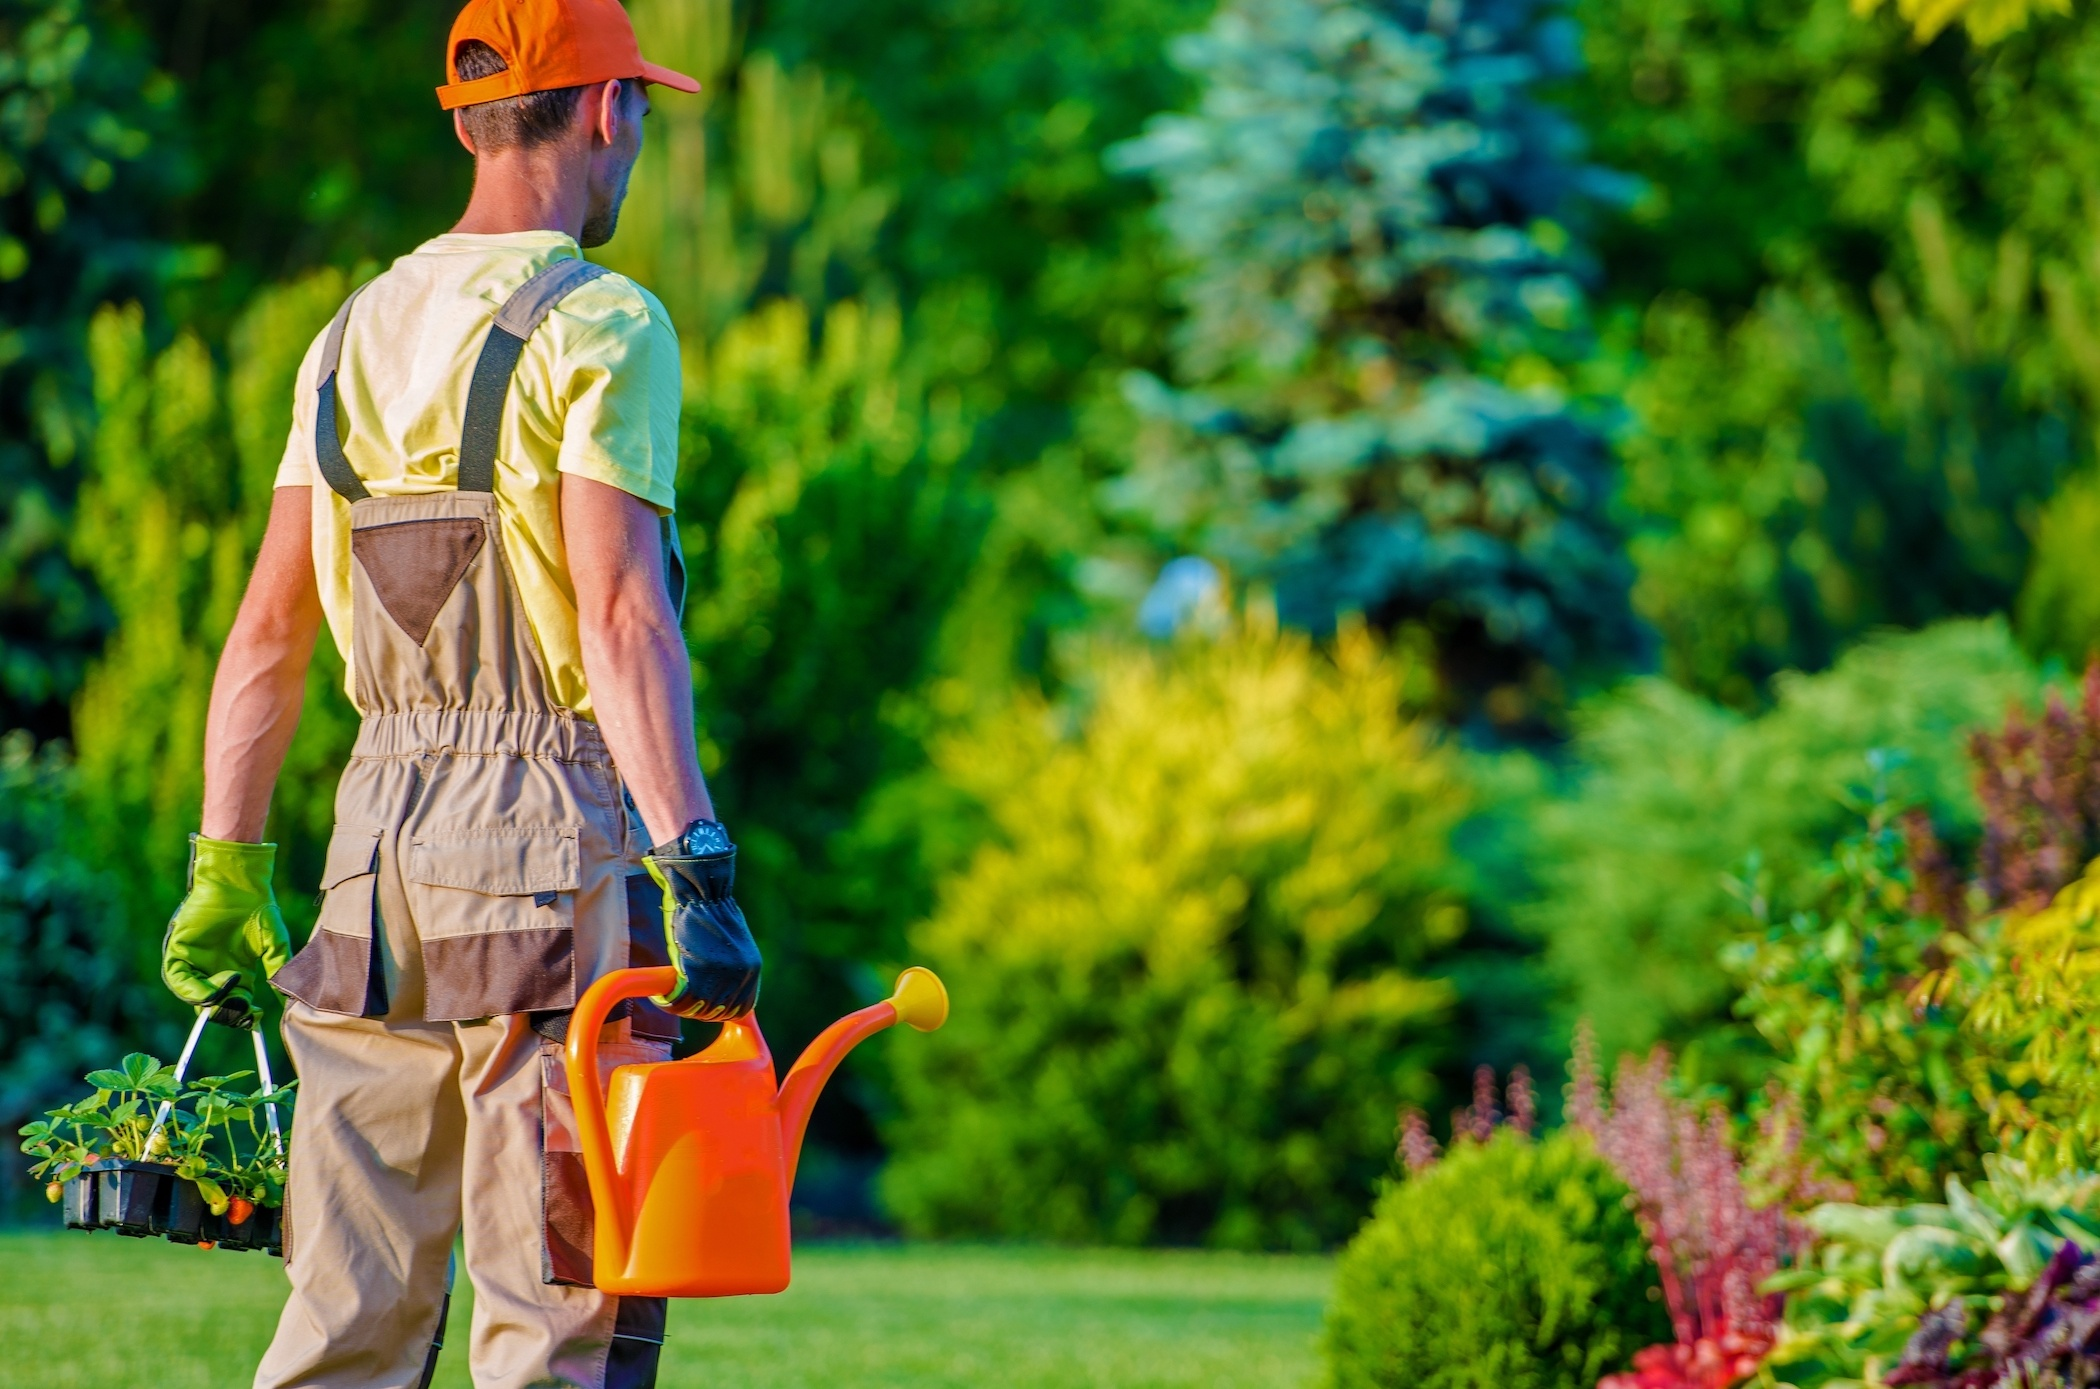 How To Hire The Right Landscaper | The Experienced Gardener